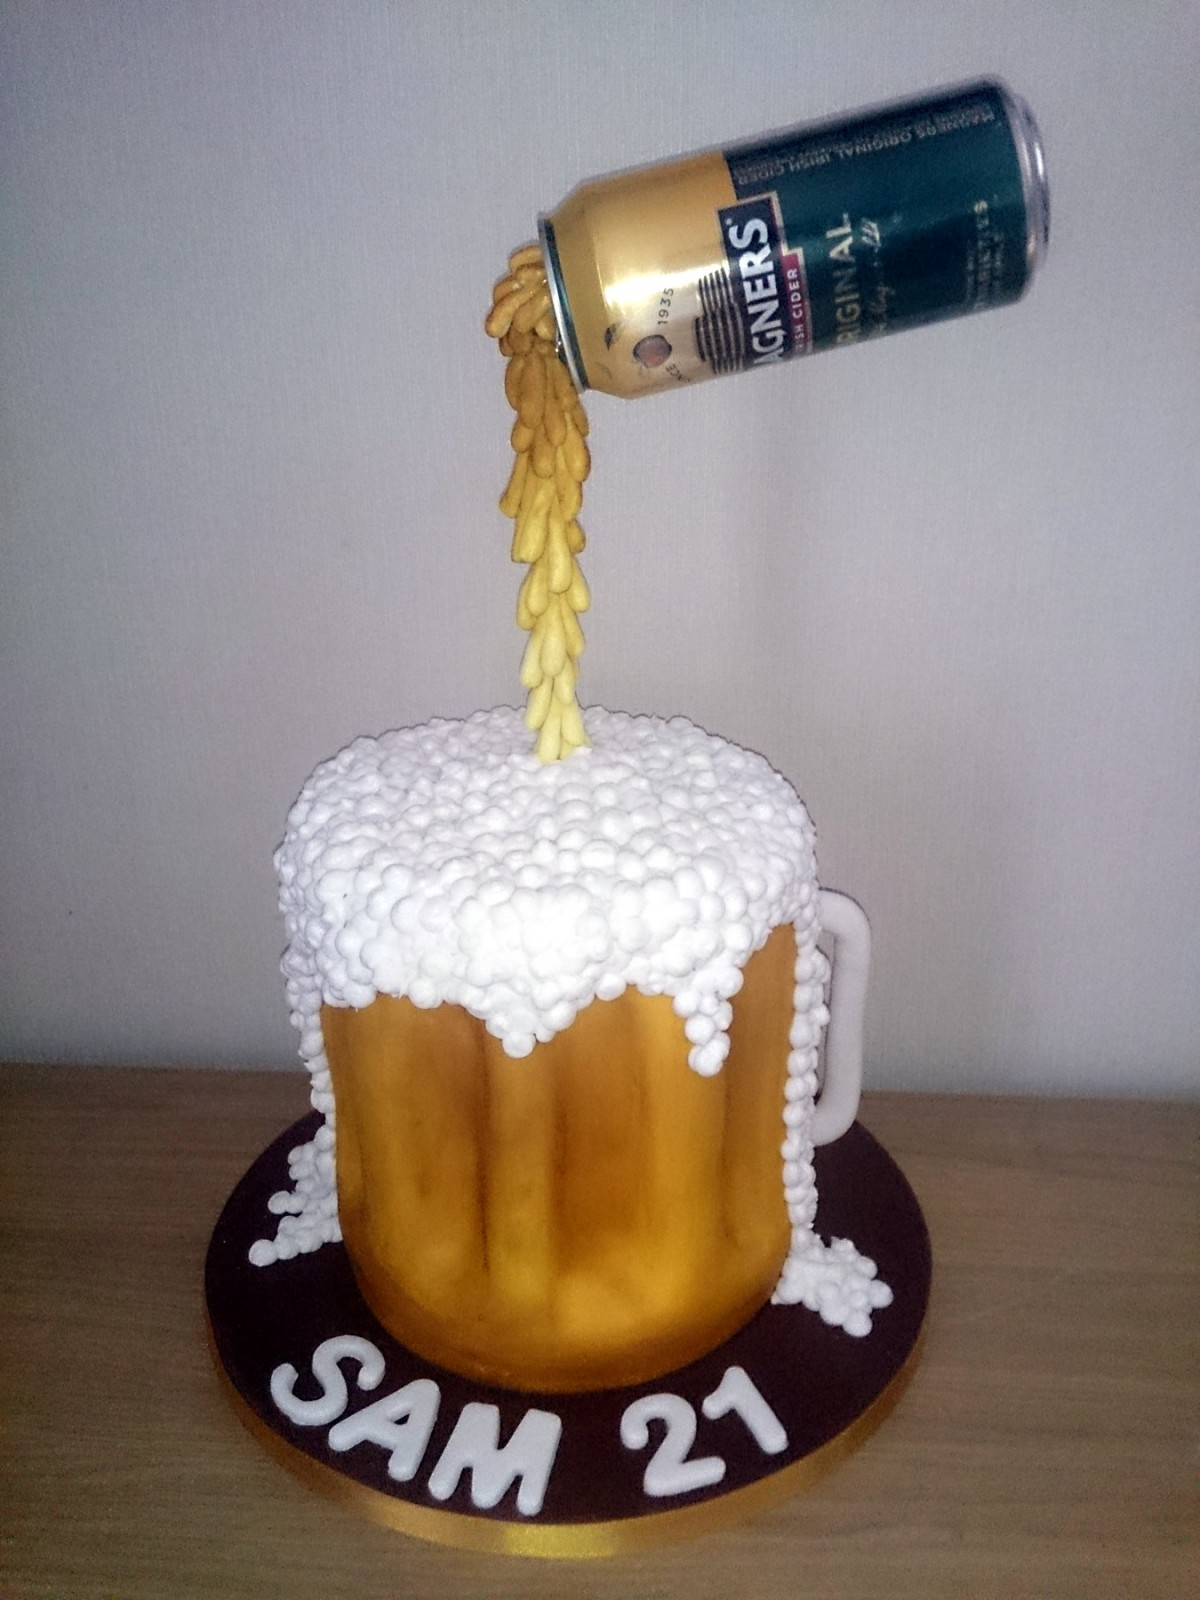 How To Make A Sponge Birthday Cake